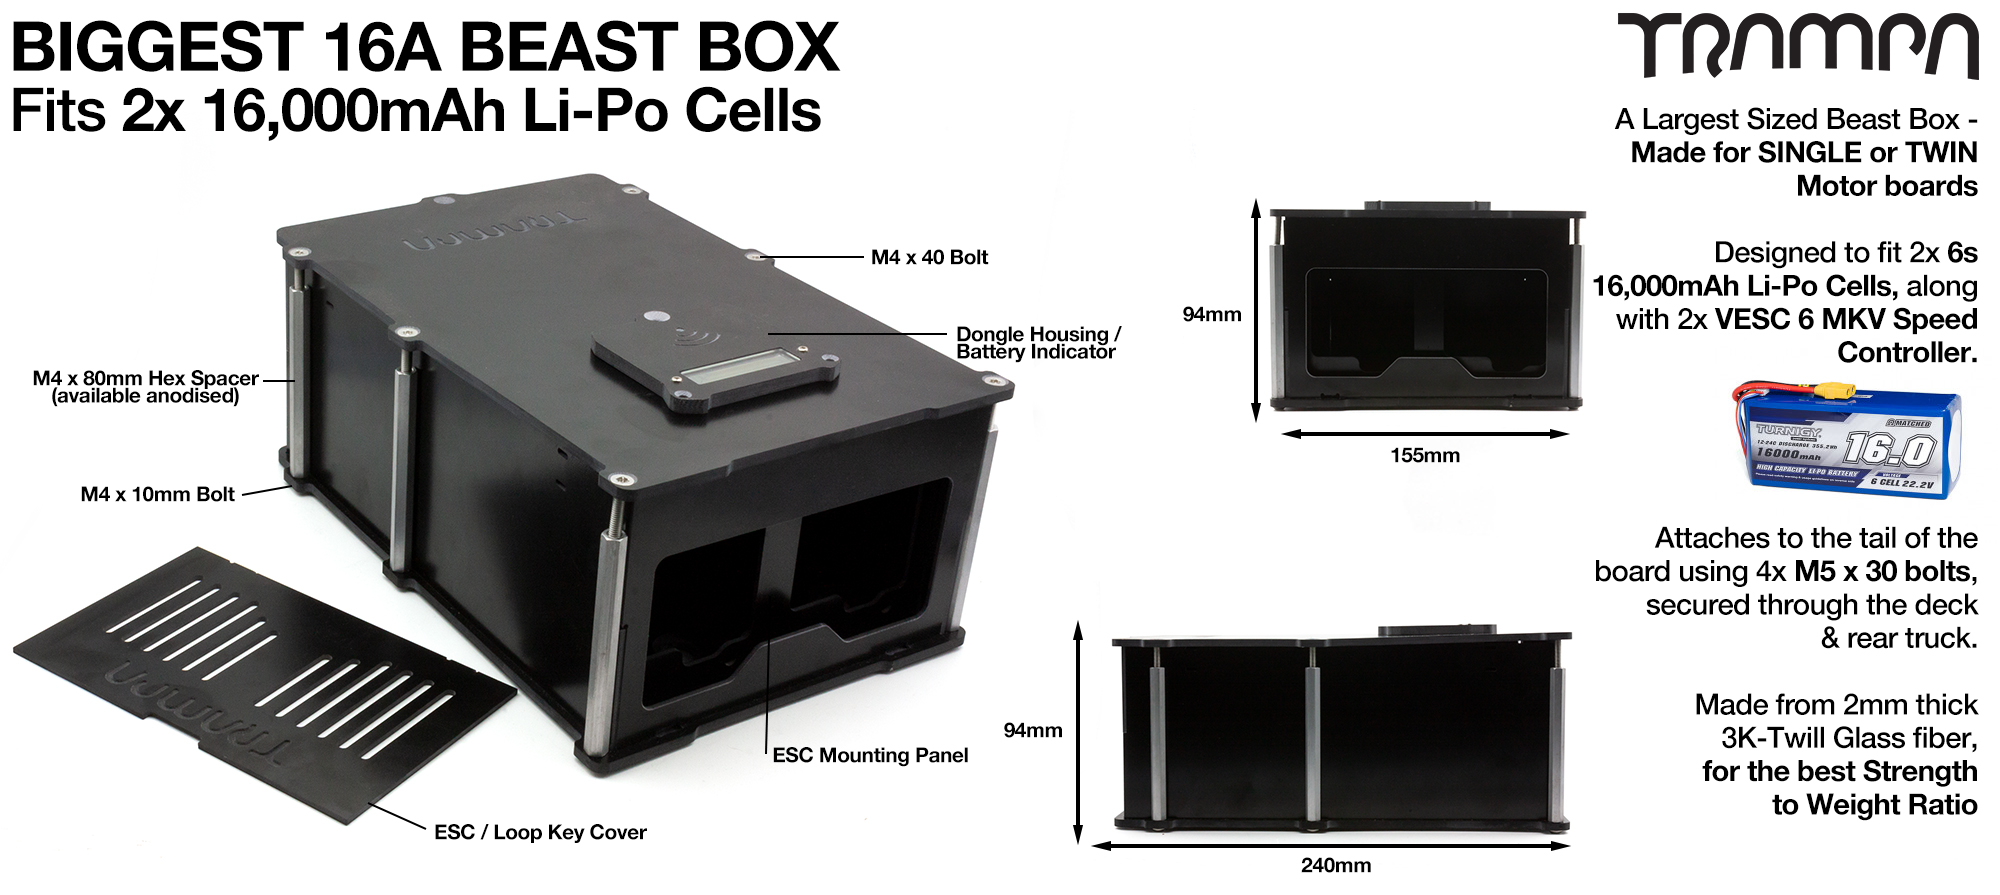 BIGGEST BEAST Box to fit 2x 6s 16000 mAh cells with Internal VESC Housing - TWIN Motor